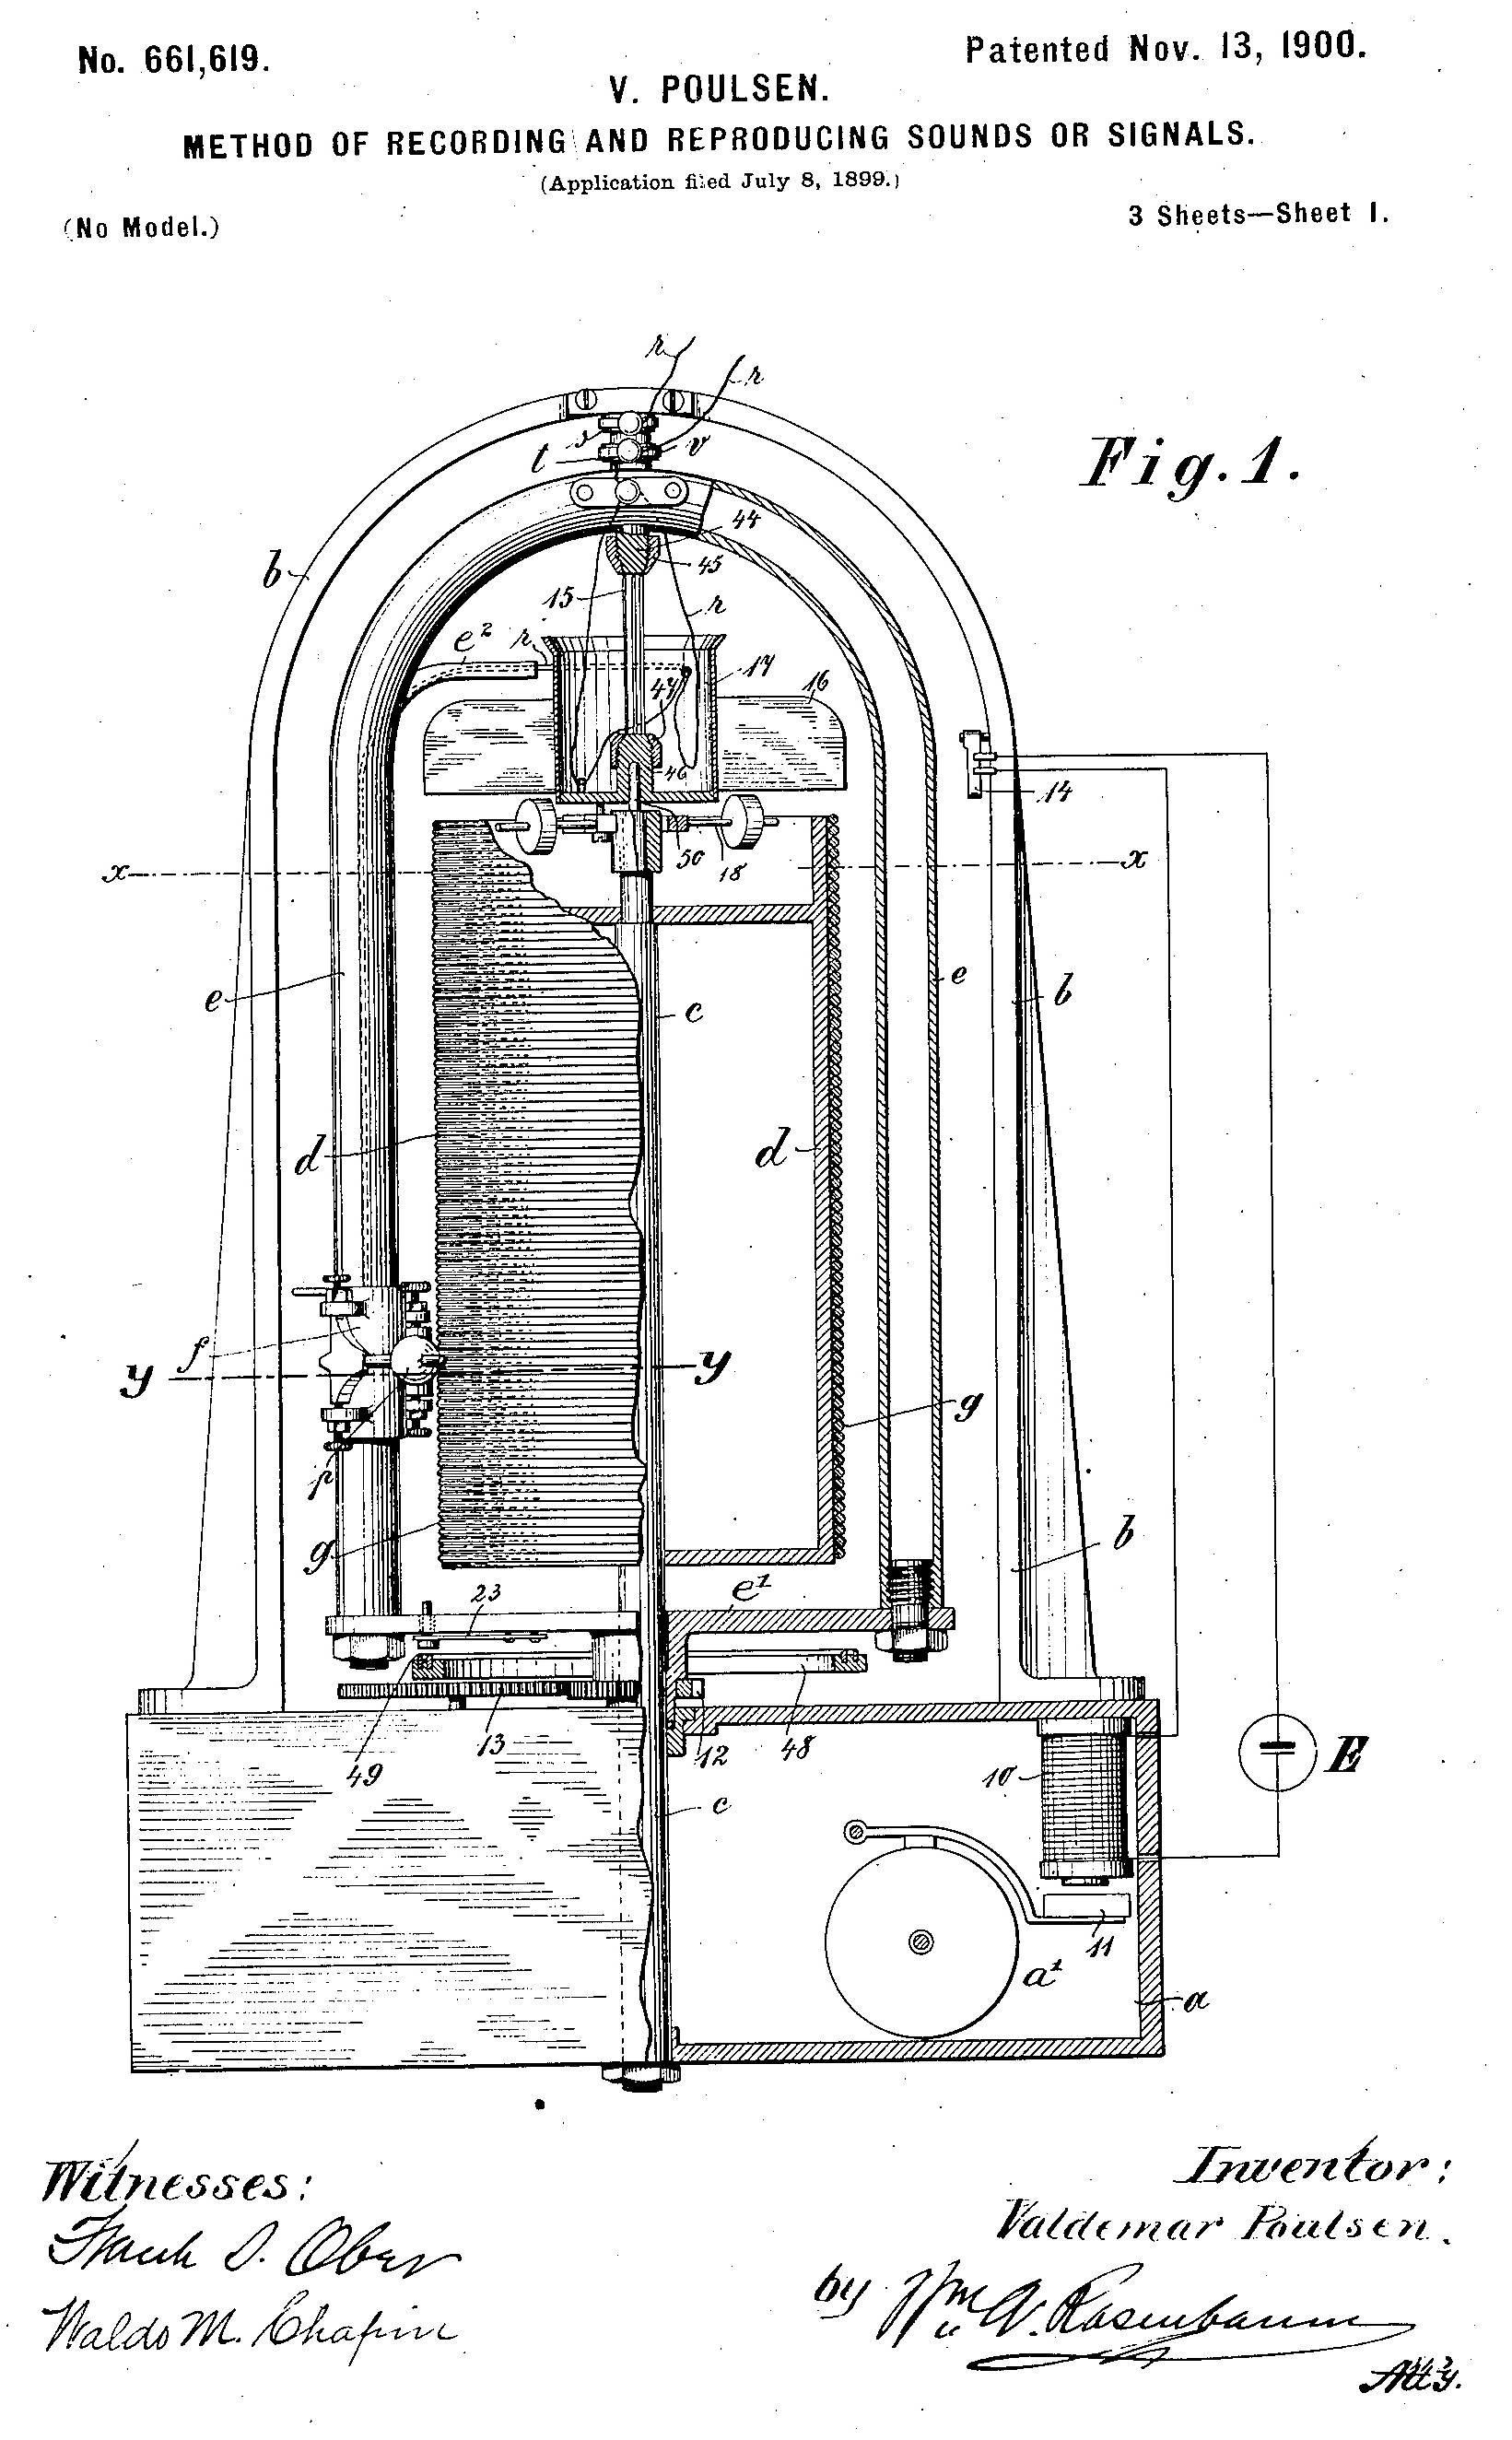 file us patent 661 619 - magnetic recorder jpg